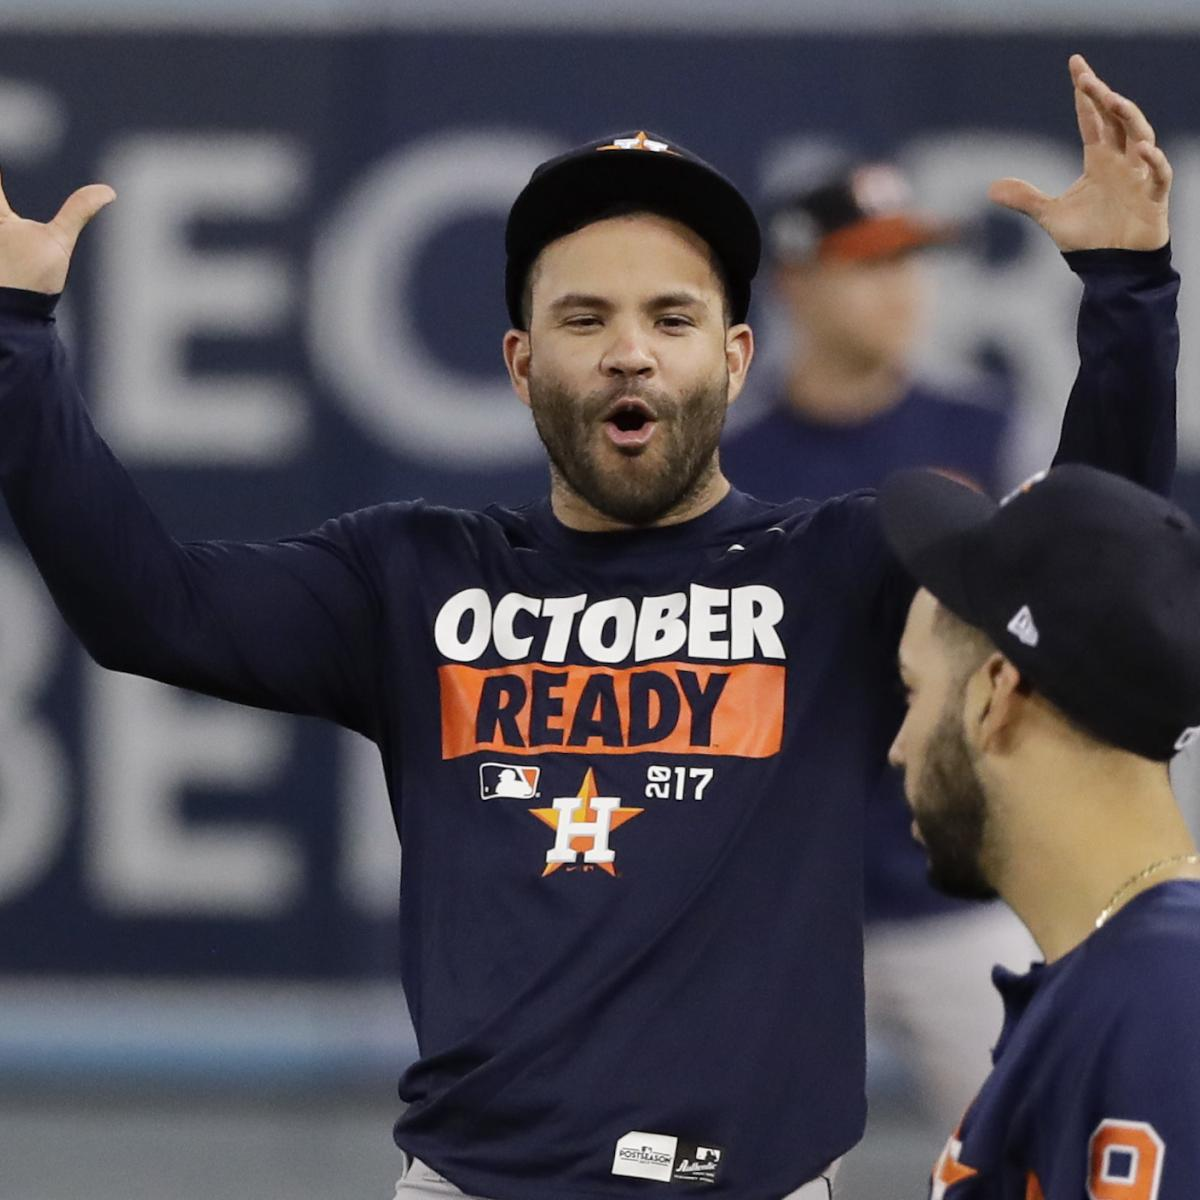 Jose Altuve Wins 2017 AL MVP Award